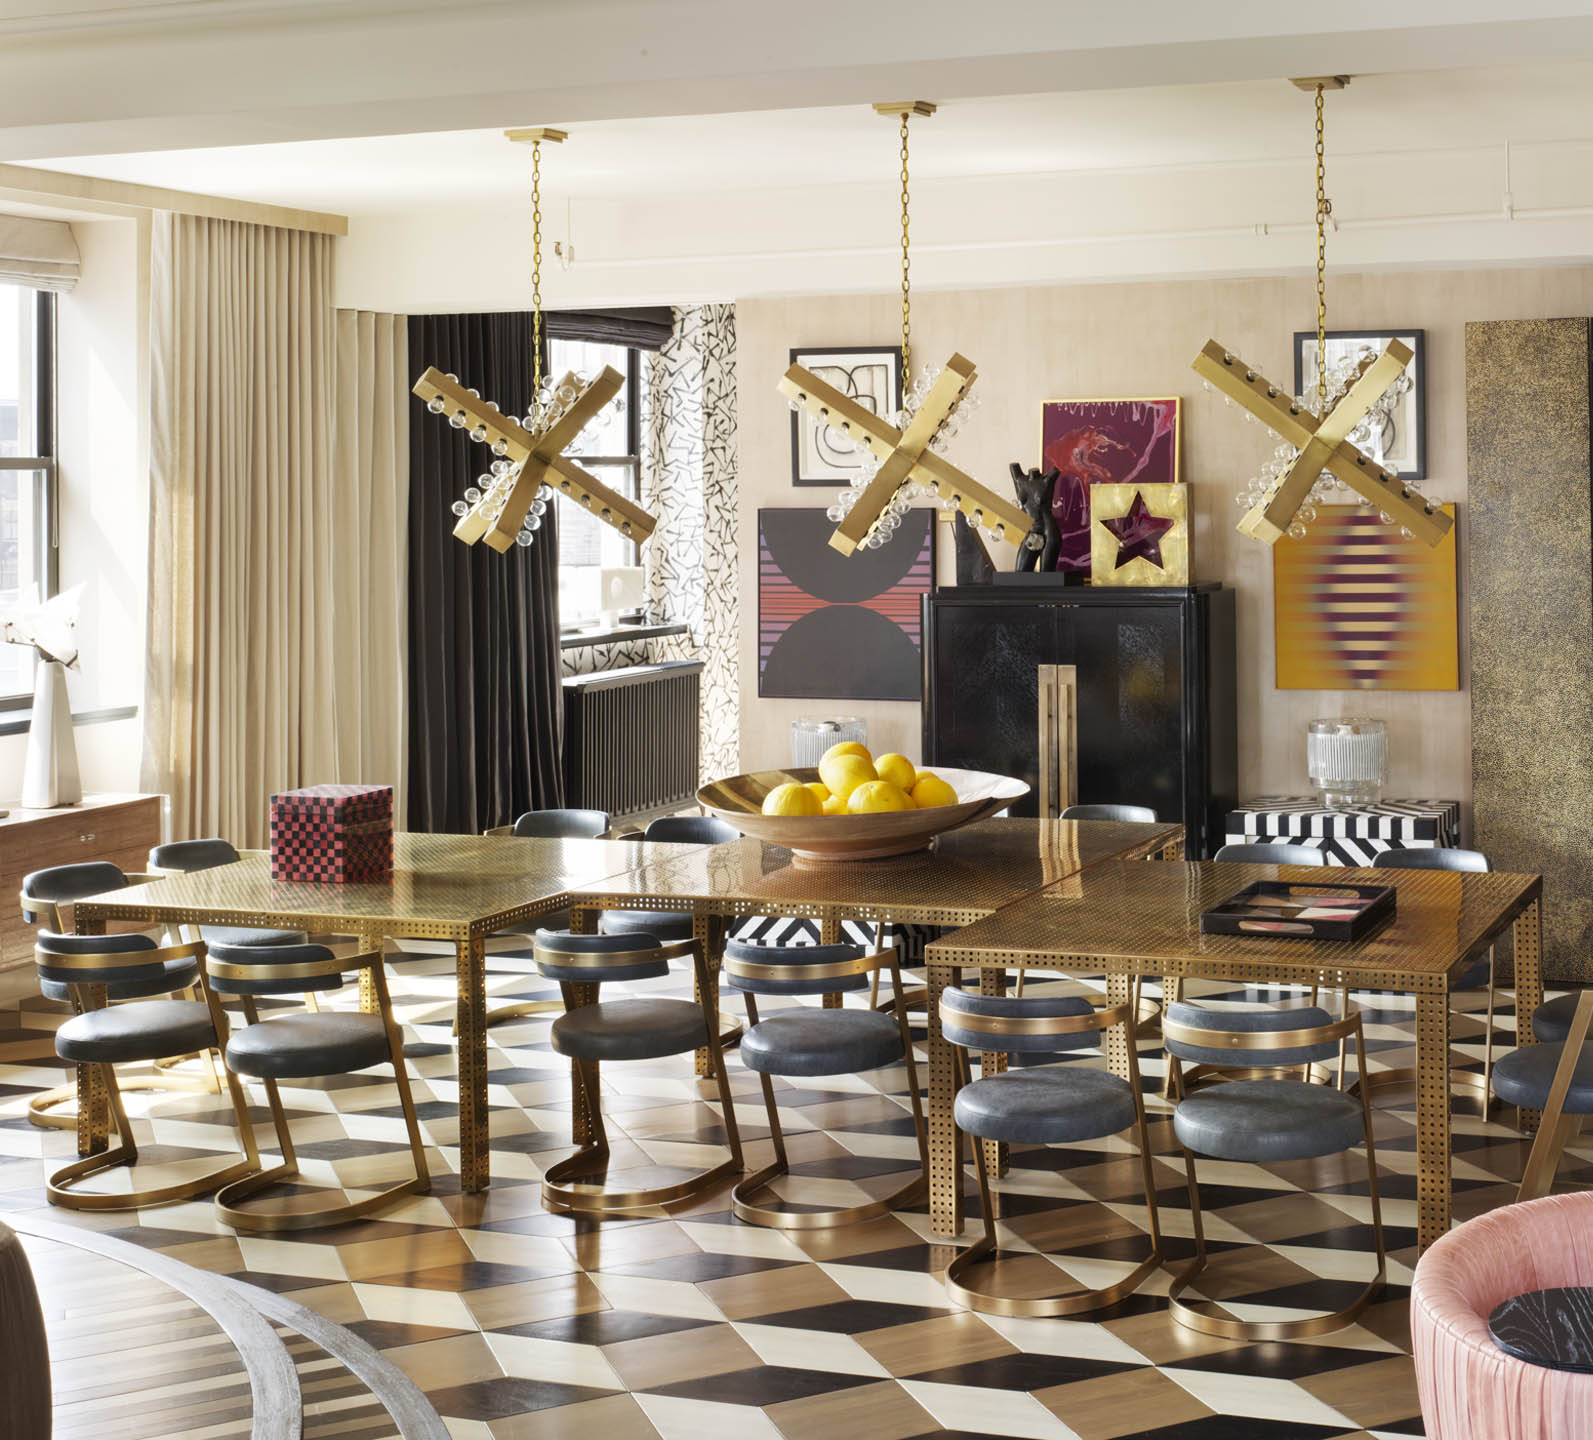 Kelly Wearstler Interior Design Projects Top 10 Insplosion